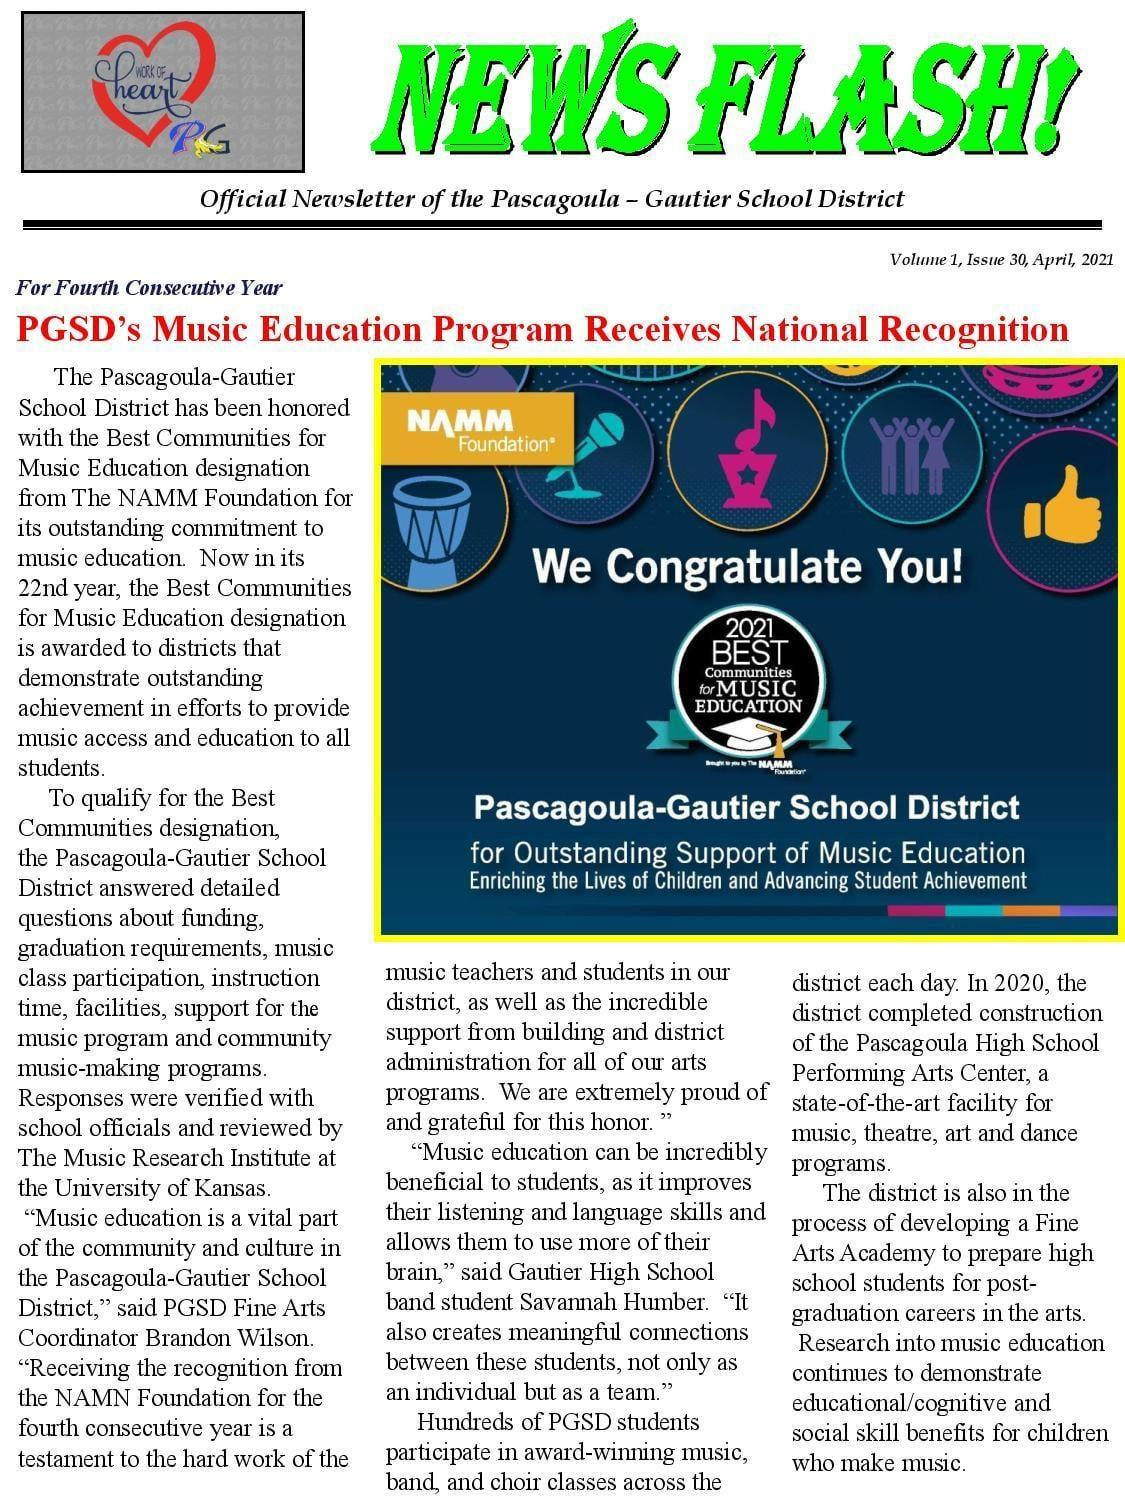 PGSD Music Education earns national recognition